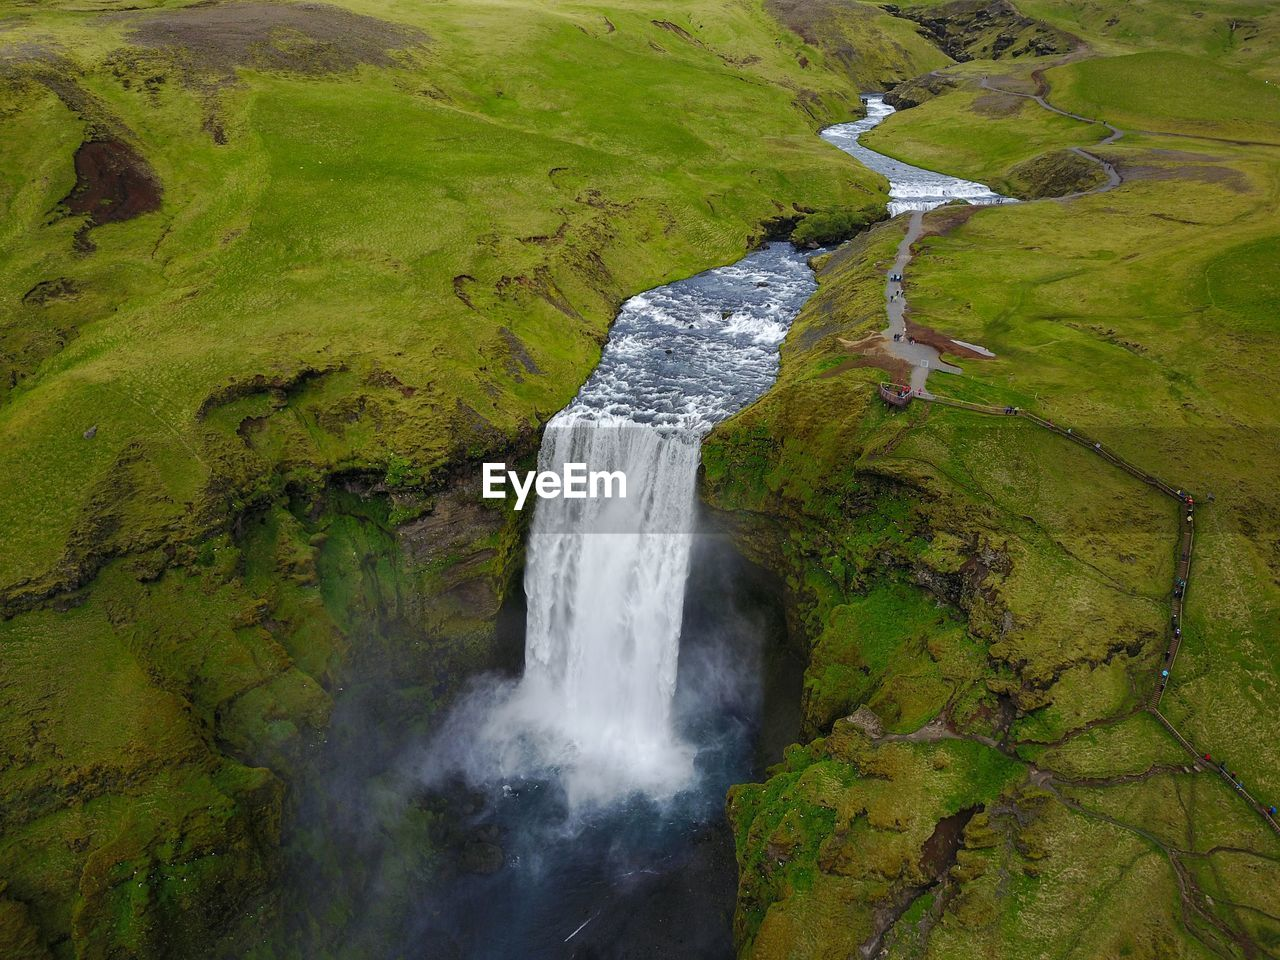 High Angle View Of Waterfall Amidst Landscape